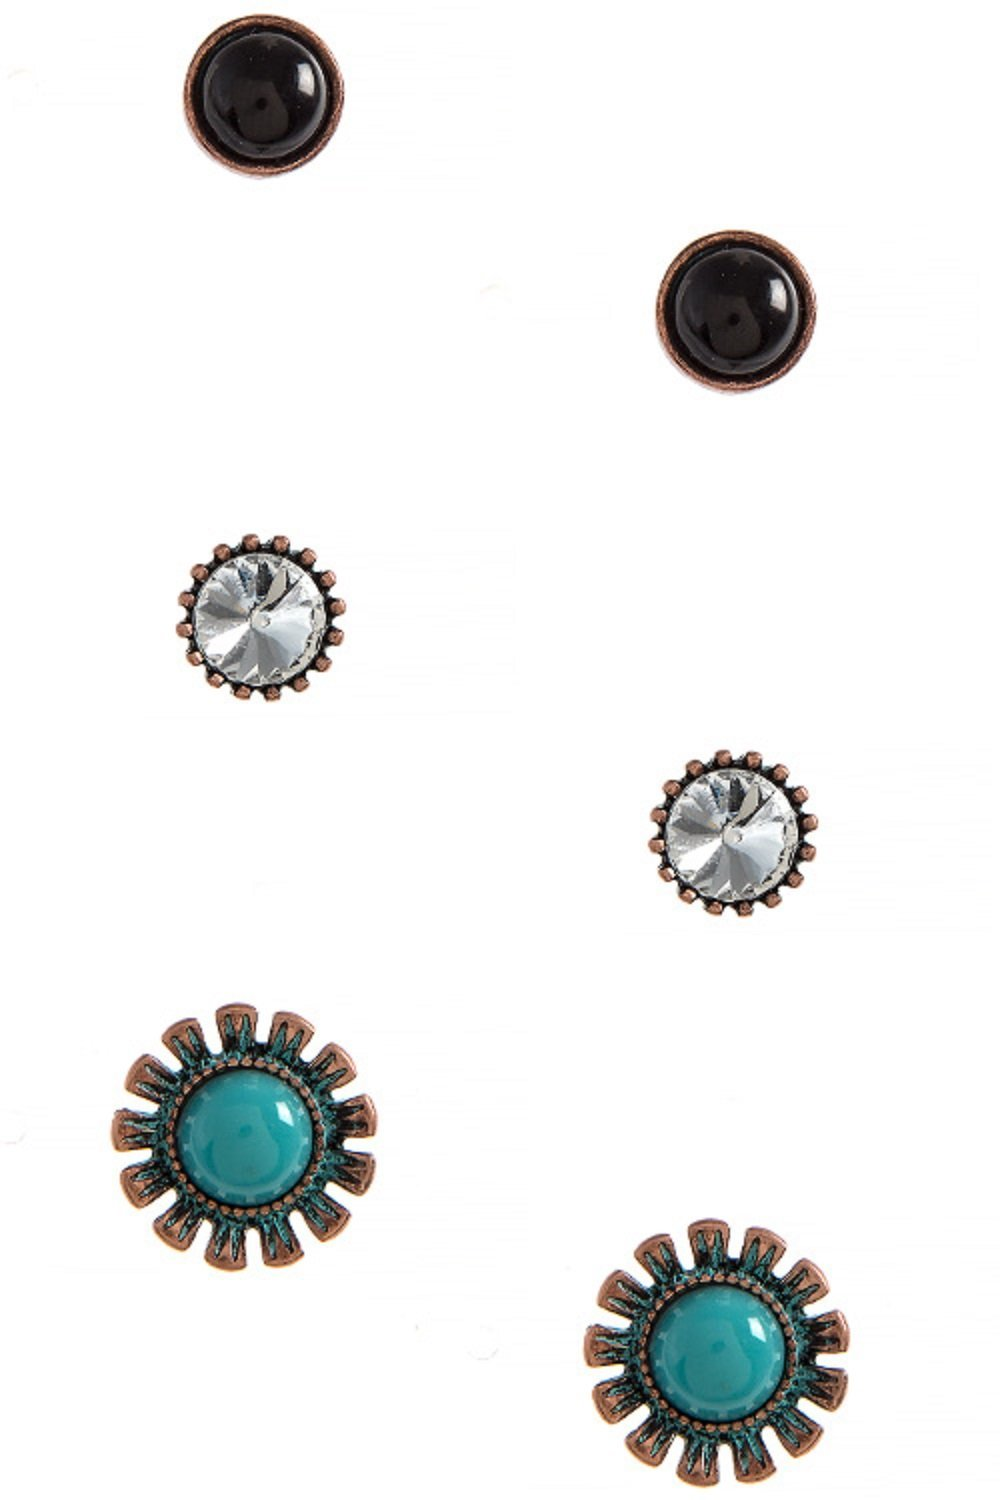 Rustic Southwestern Floral 316L Surgical Steel Earring Set (Copper/Turquoise)